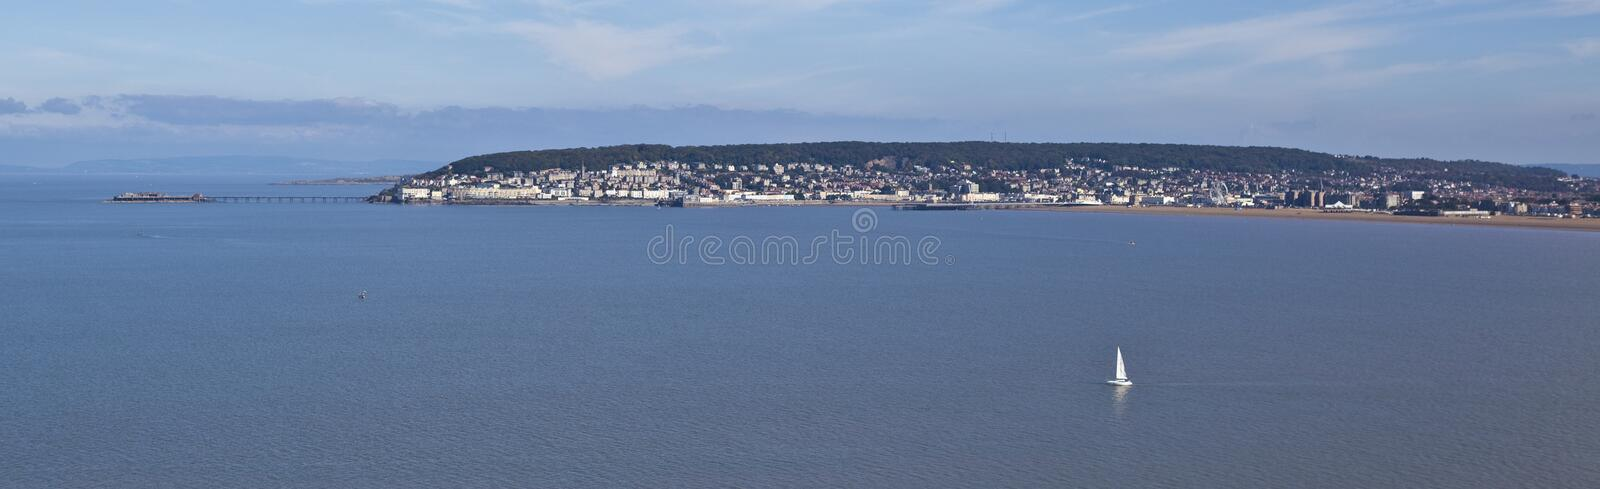 Panoramic view of Weston Super Mare and weston bay royalty free stock images